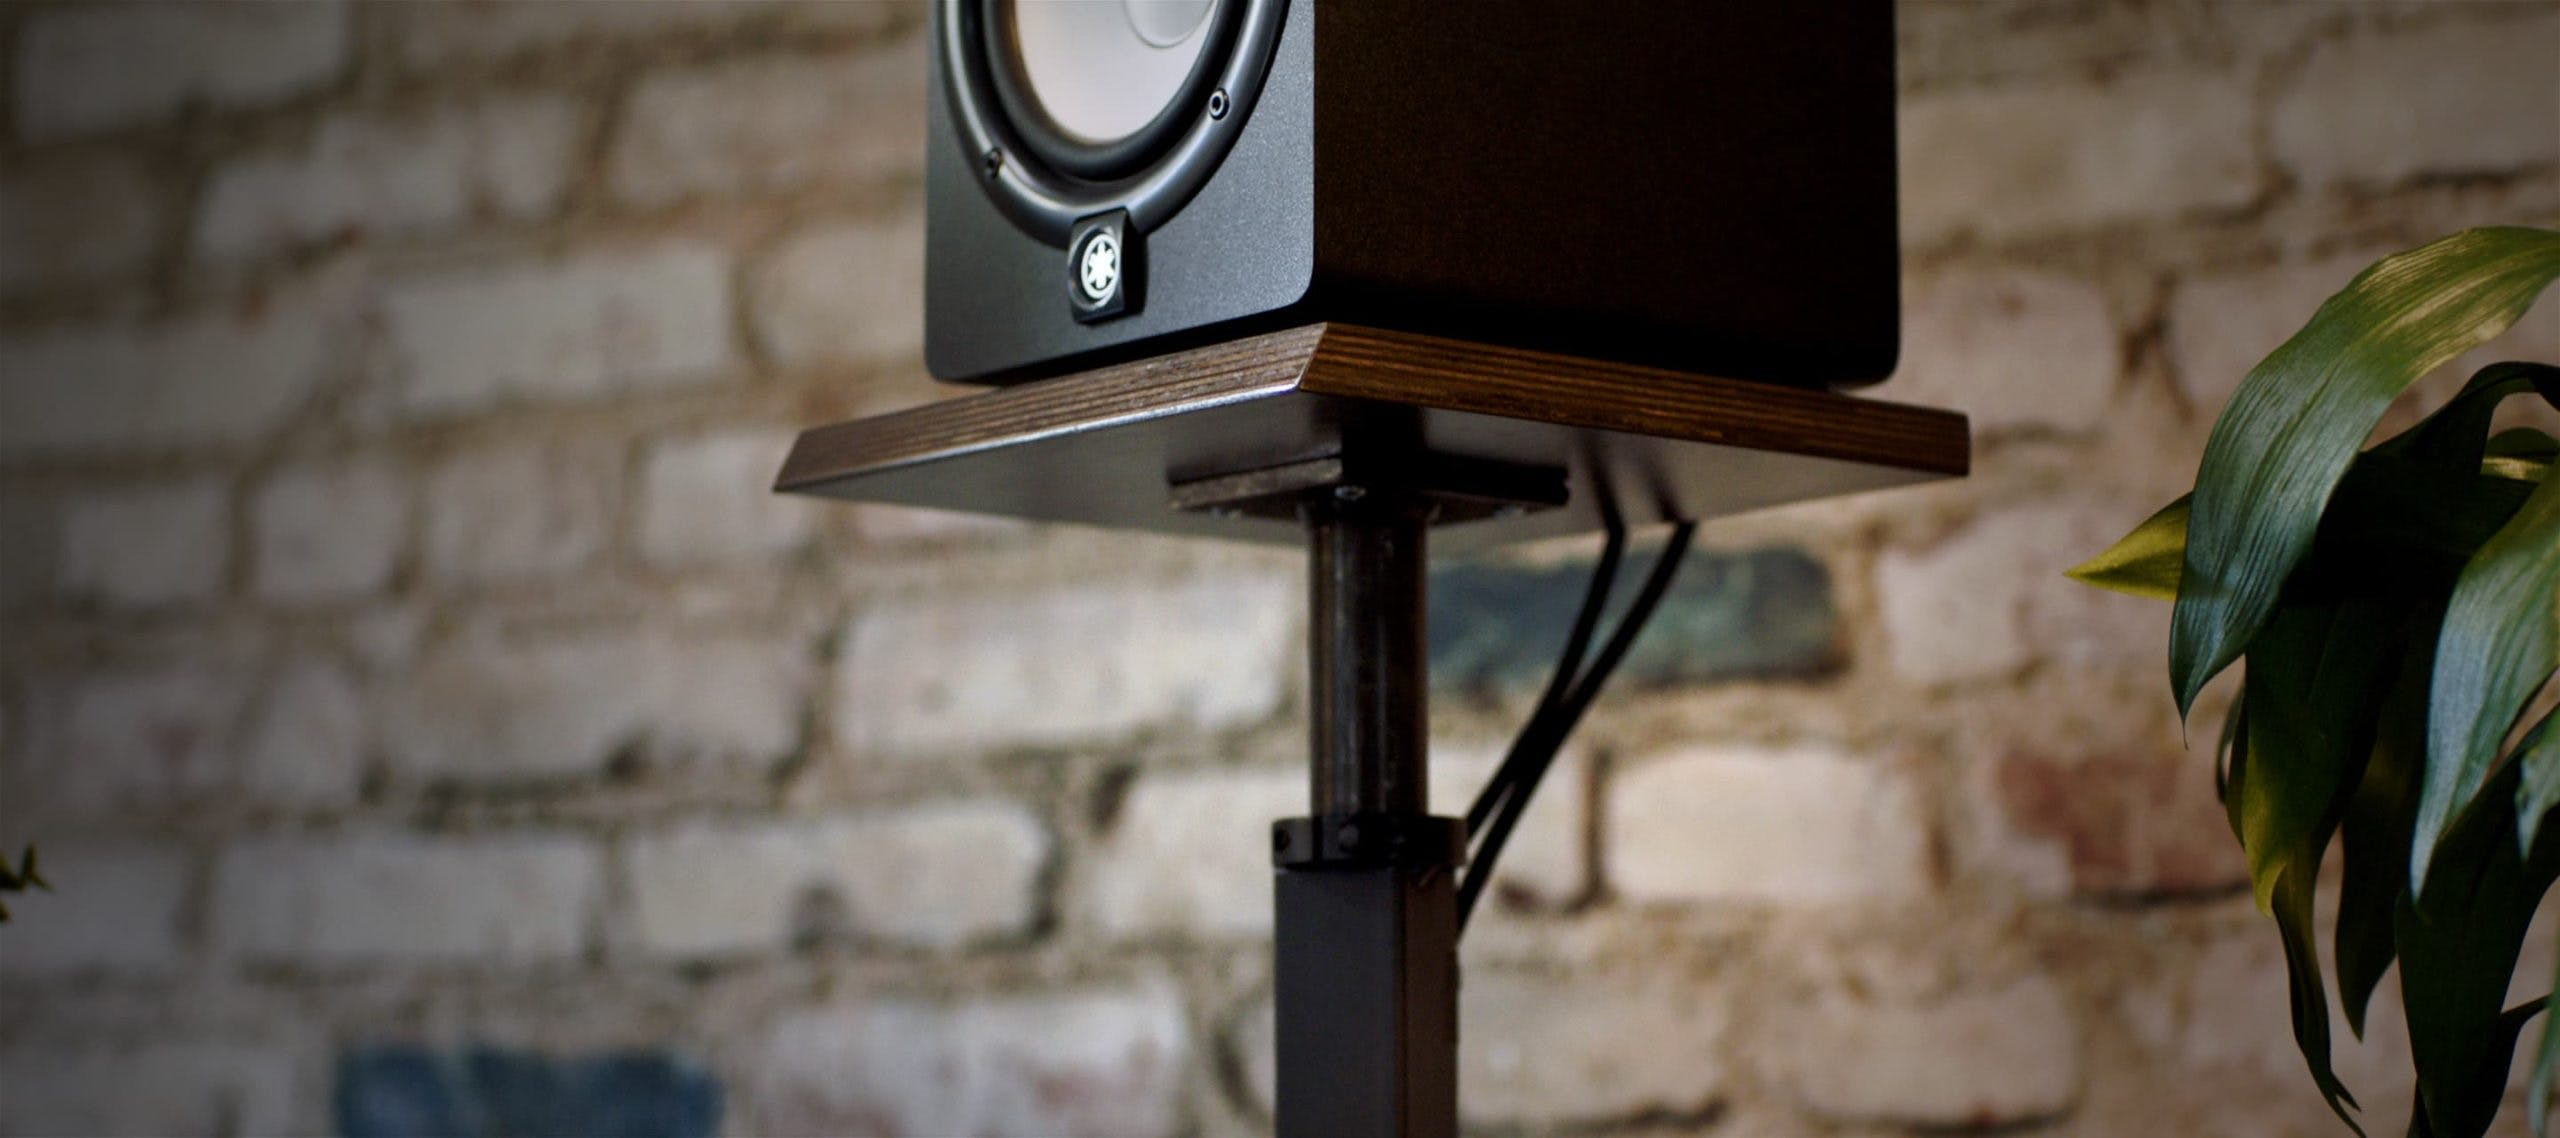 Yamaha HS8 Studio Monitors sitting on top of brown Output speaker stands.